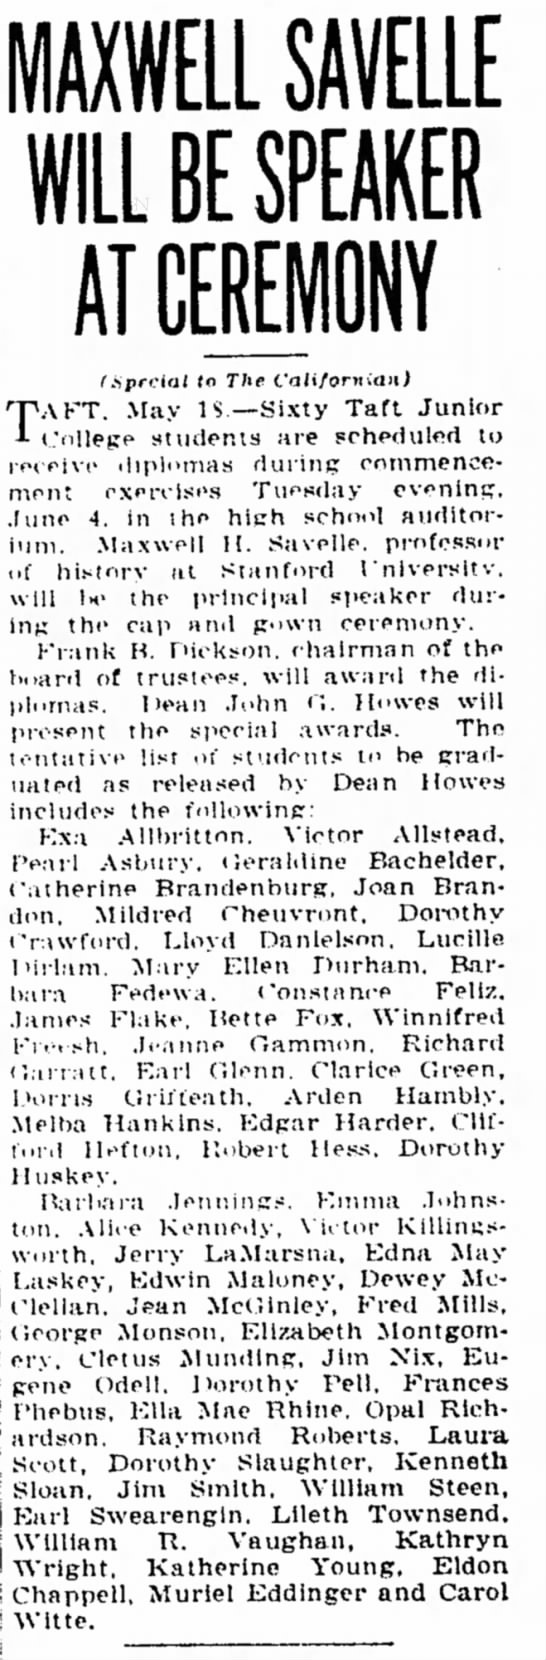 Muriel Eddinger Graduation from Taft Junior College, May 18, 1940